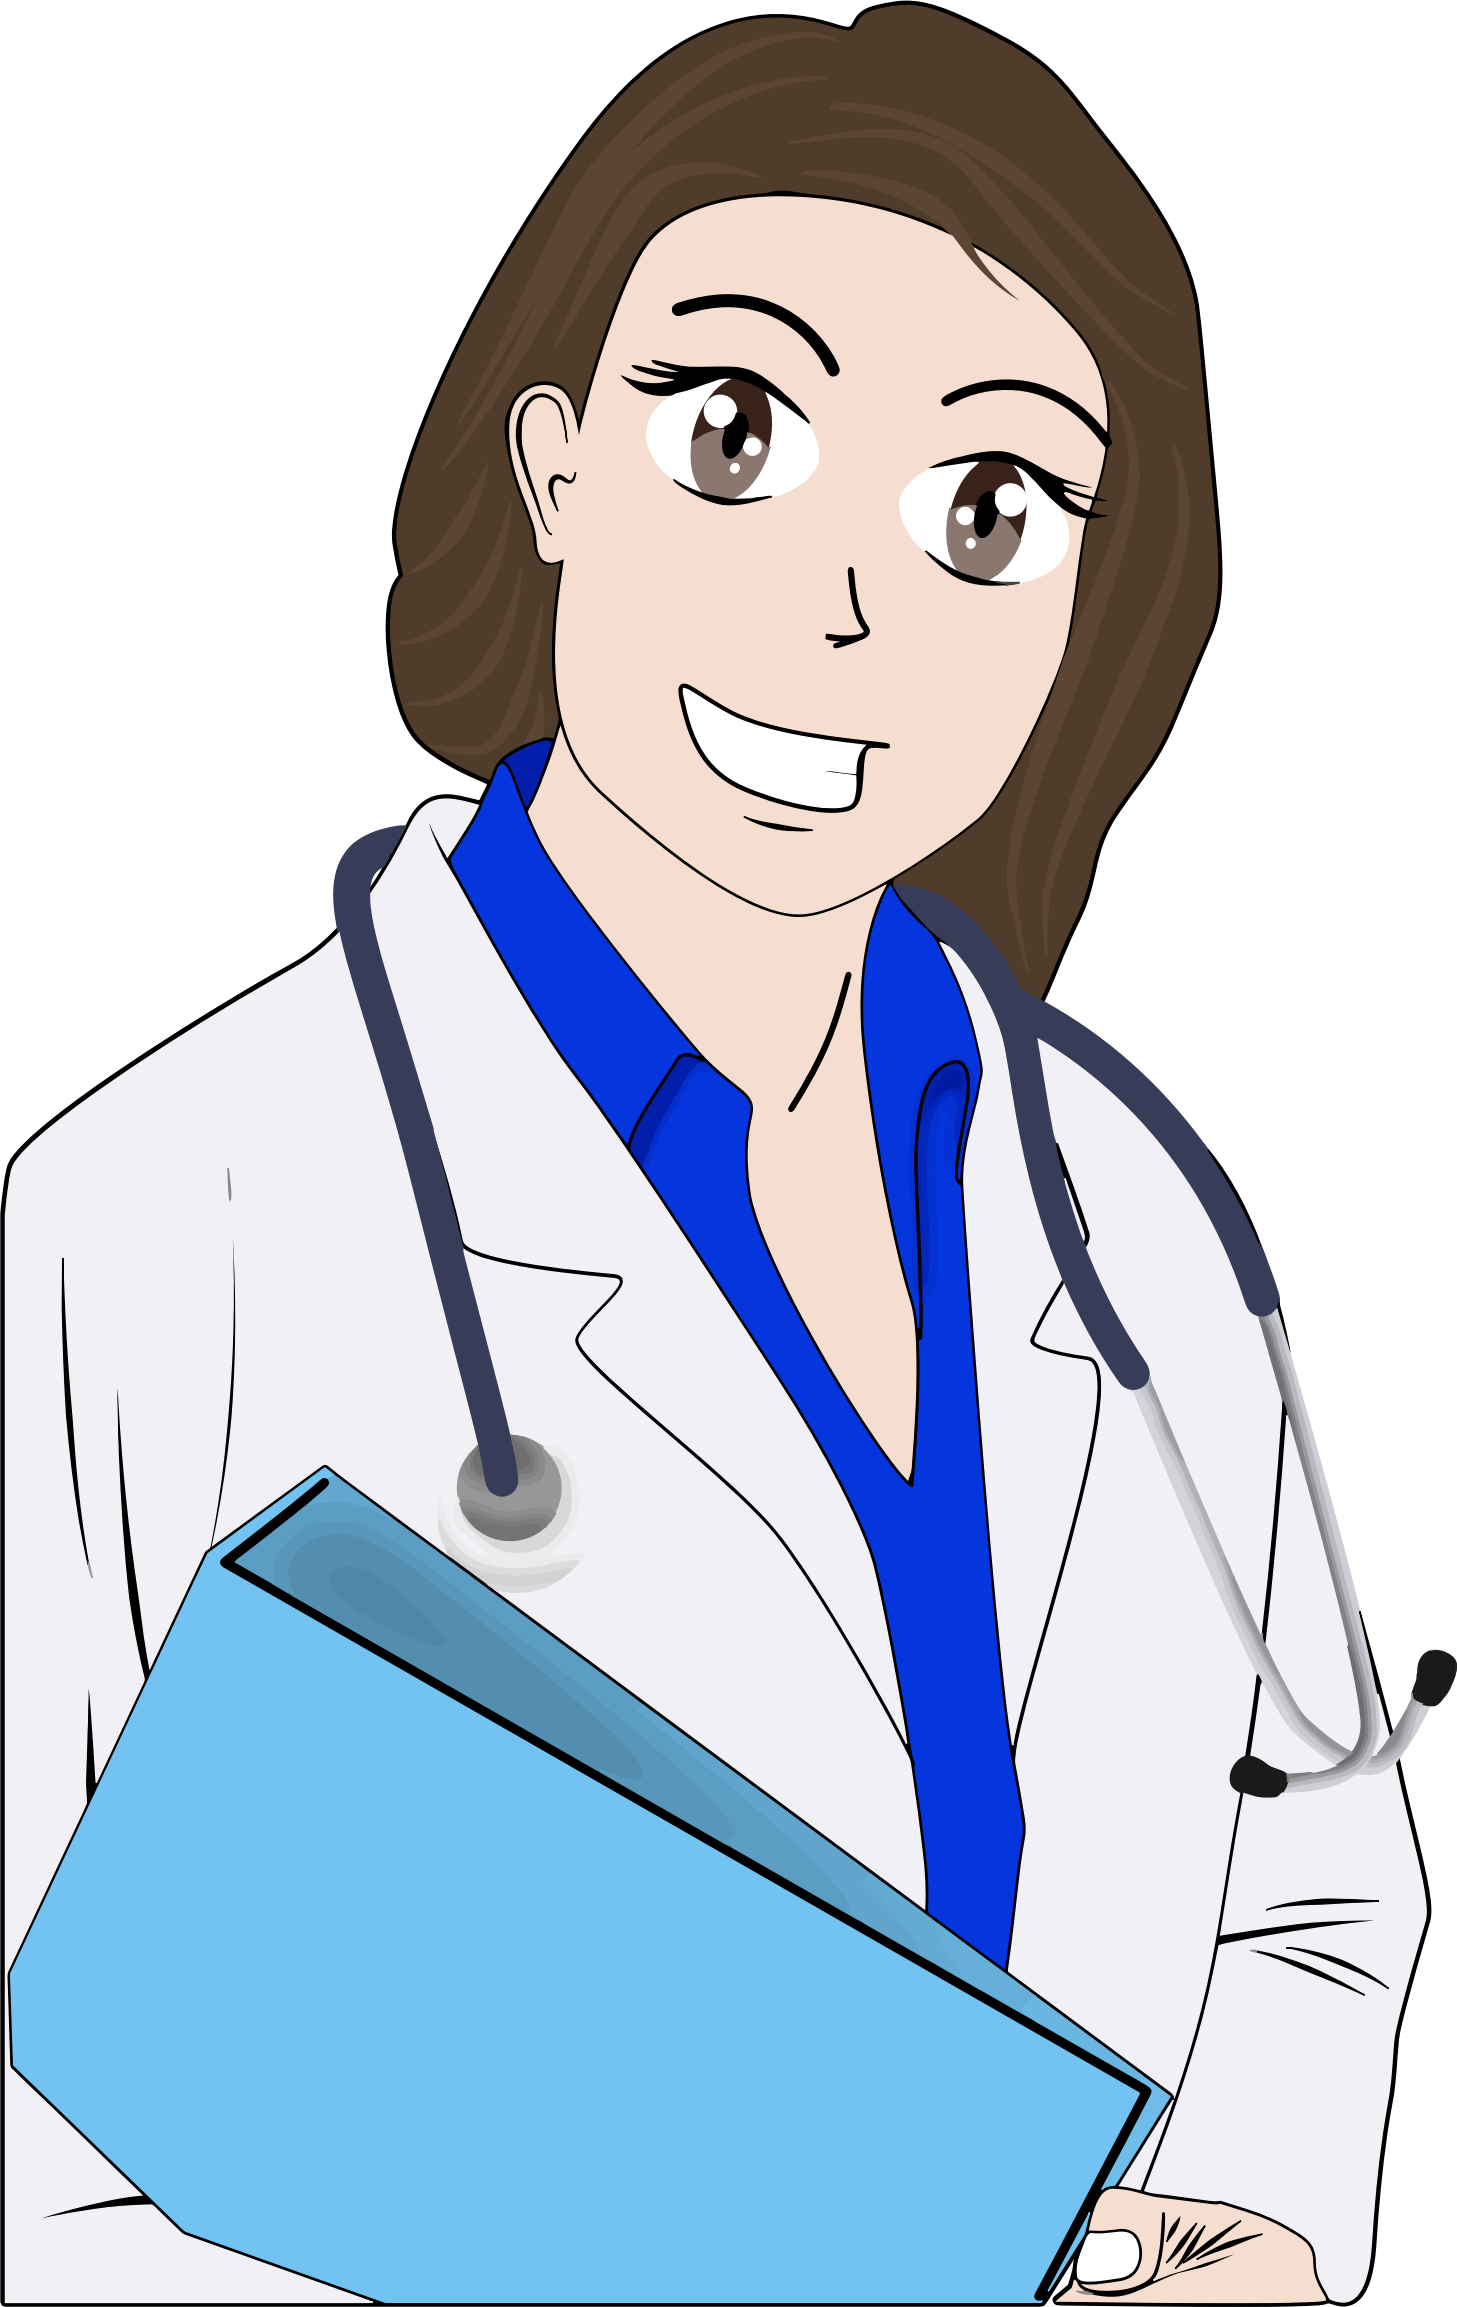 doctor clipart woman doctor